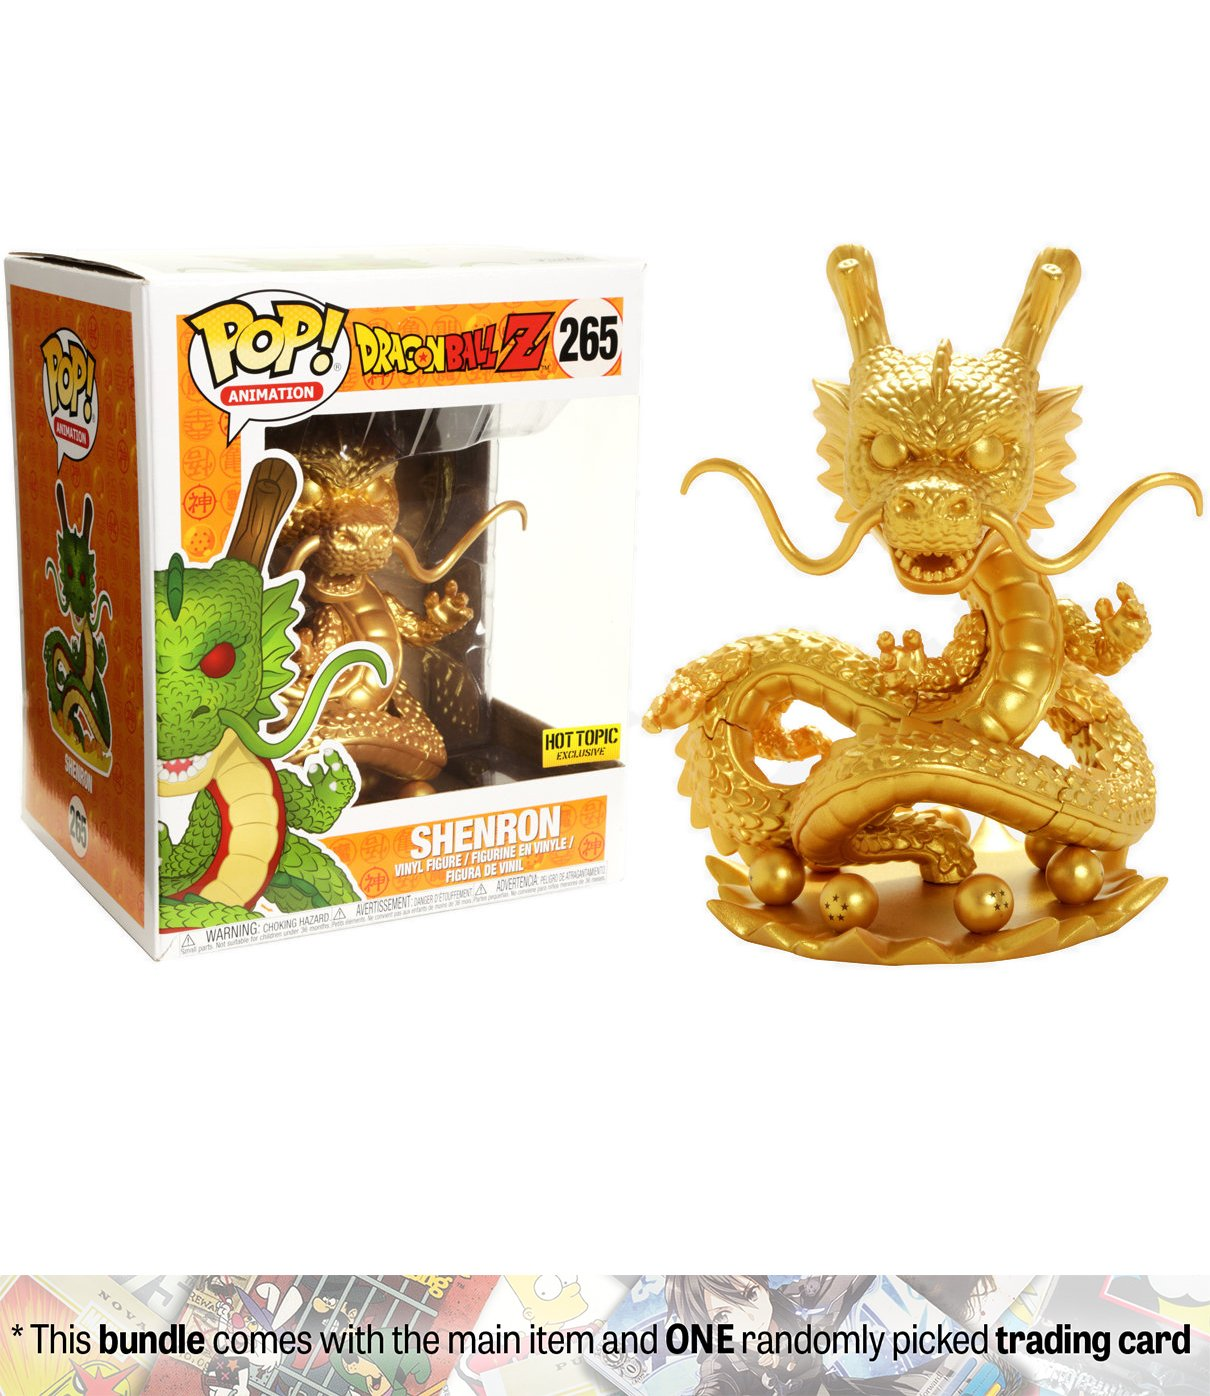 Amazon.com: Shenron [Golden Color] (Hot Topic Exclusive): Funko ...